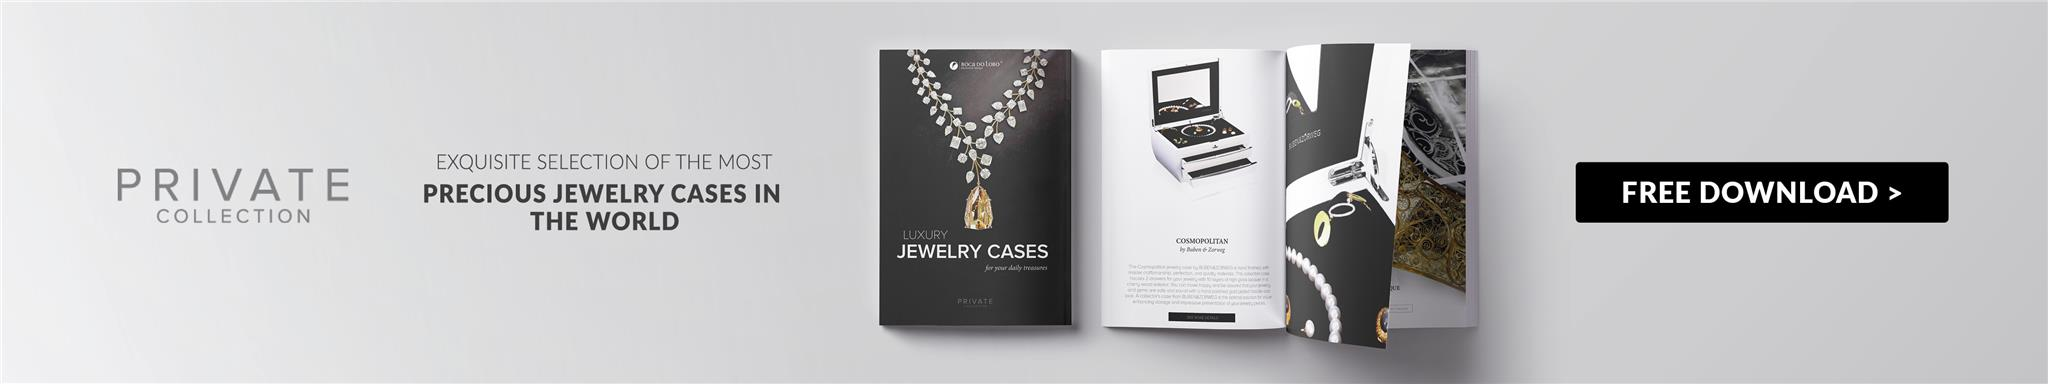 Jewelry Cases Ebook Boca do Lobo boca do lobo Boca do Lobo: Discover Which Are Our Most Iconic Pieces precious jewelry cases in the world banner